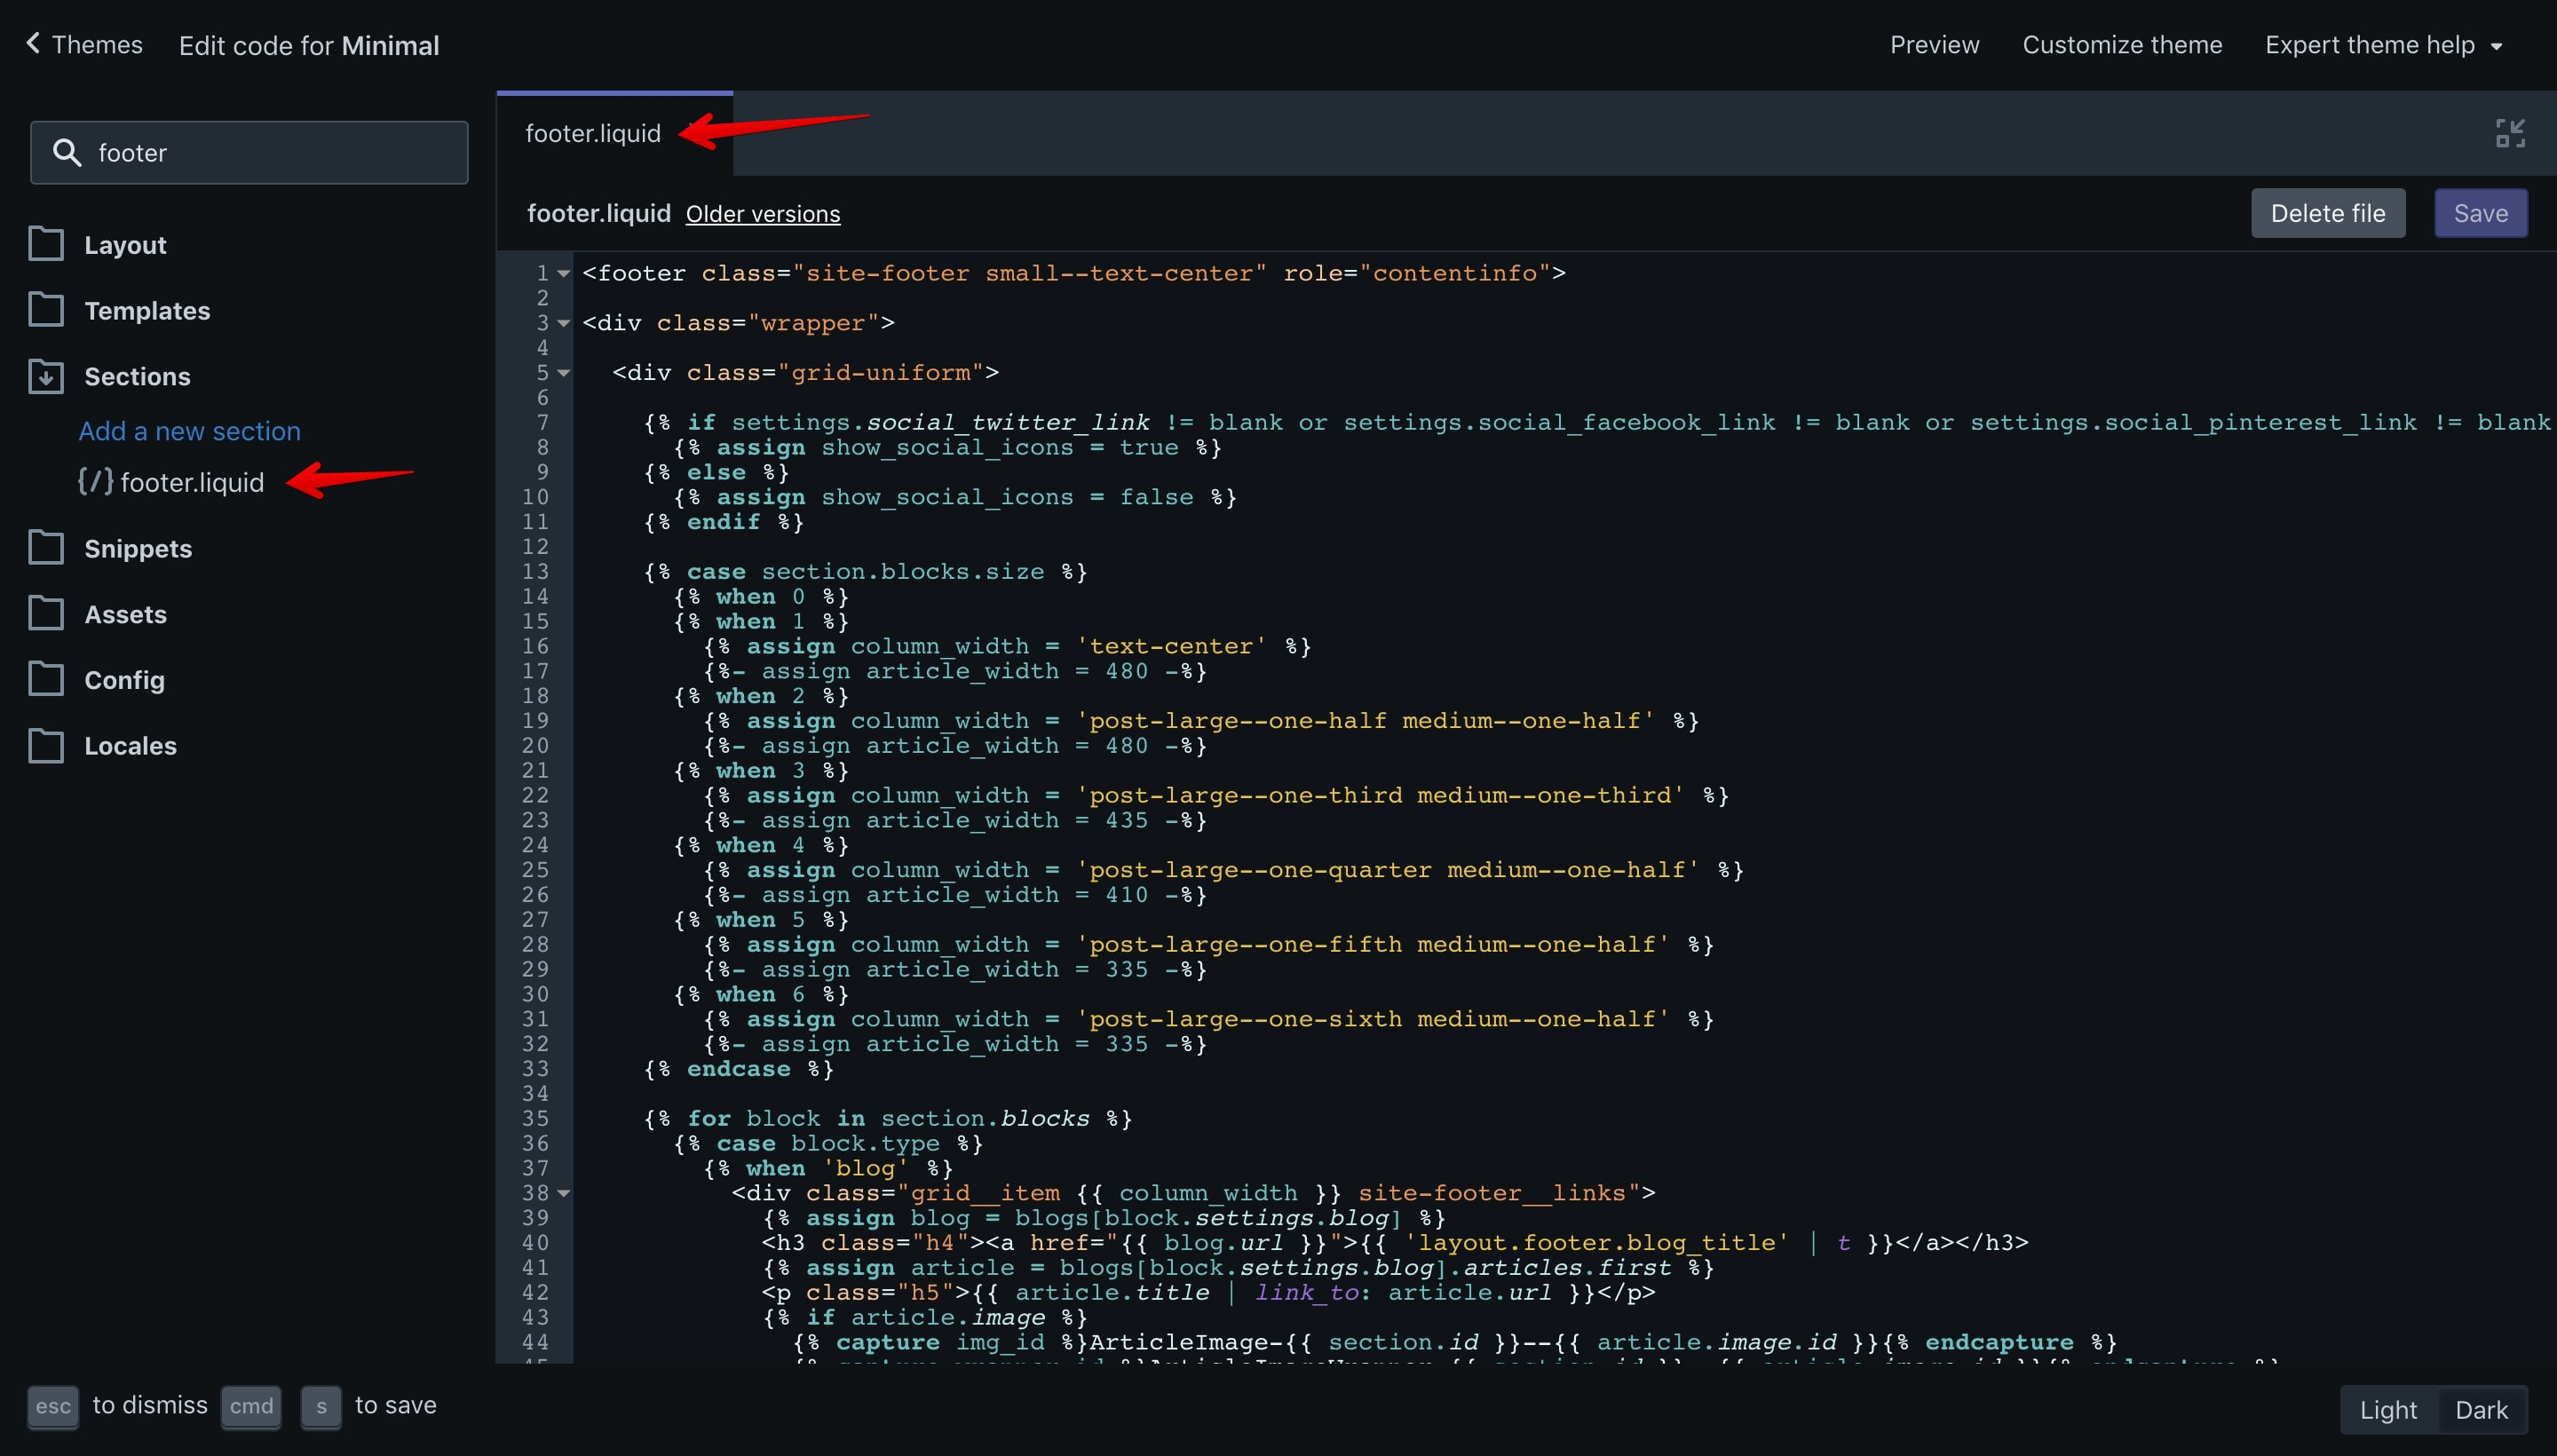 """Minimal theme """"footer.liquid"""" file opened in the code editor."""